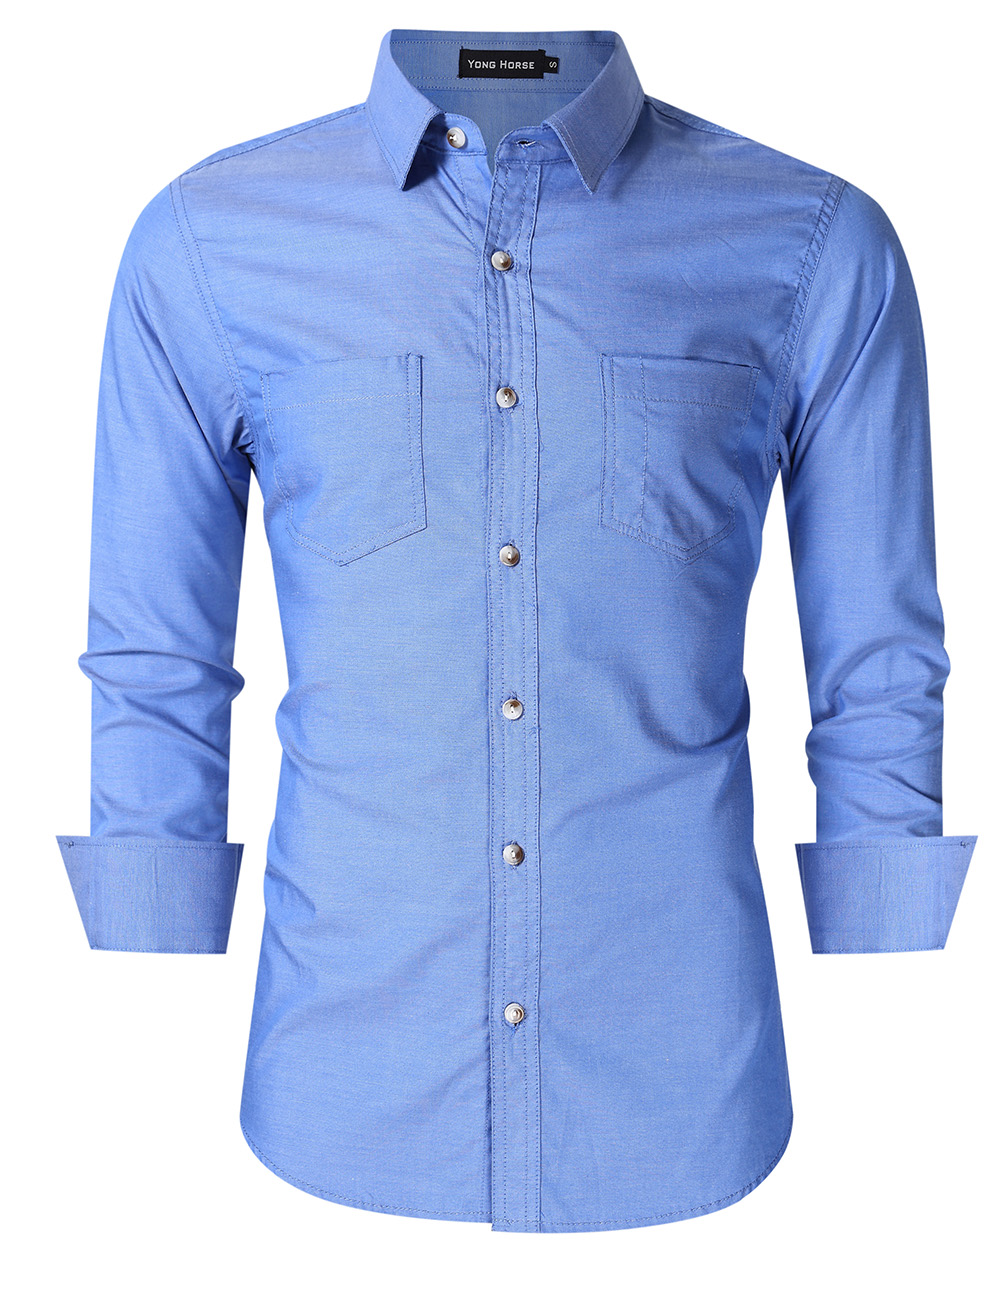 [US Direct] Yong Horse Men's Classic Slim Fit Long Sleeve Casual Western Oxford Shirts